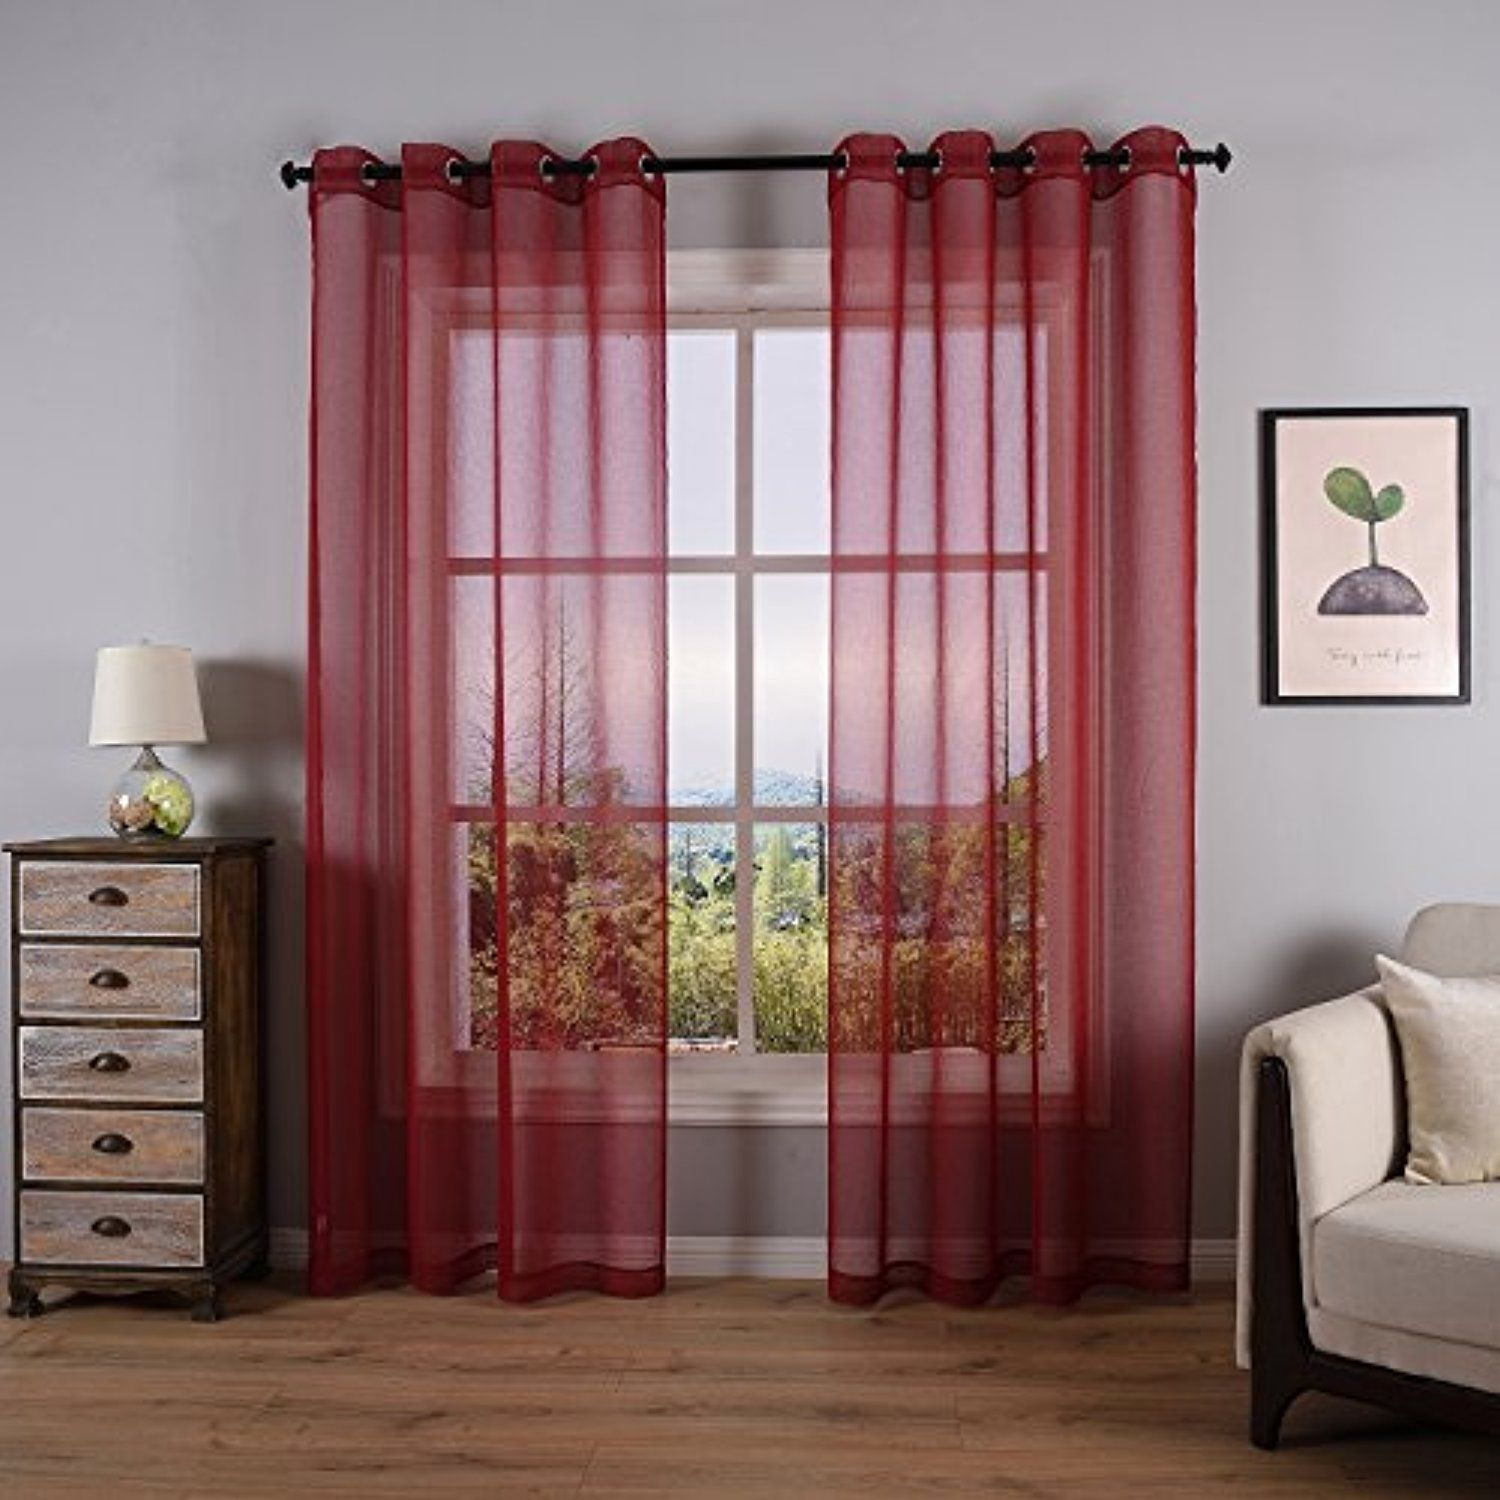 Sheer Curtains For Living Room Bedroom